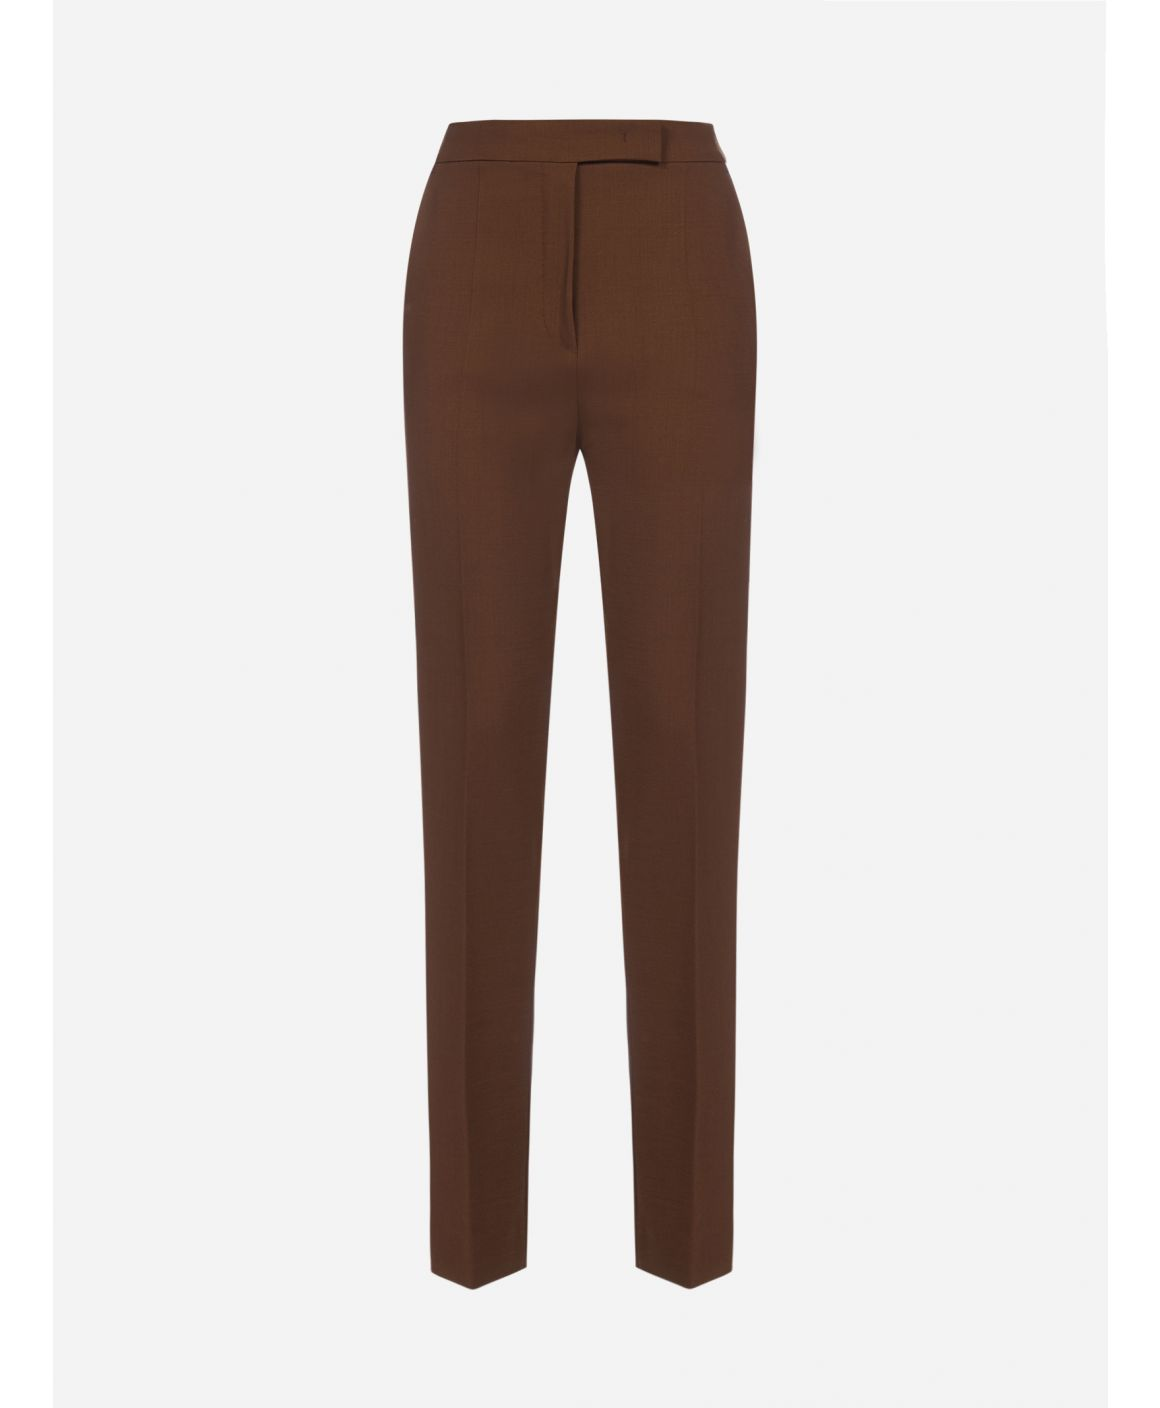 Villar stretch wool crepe trousers